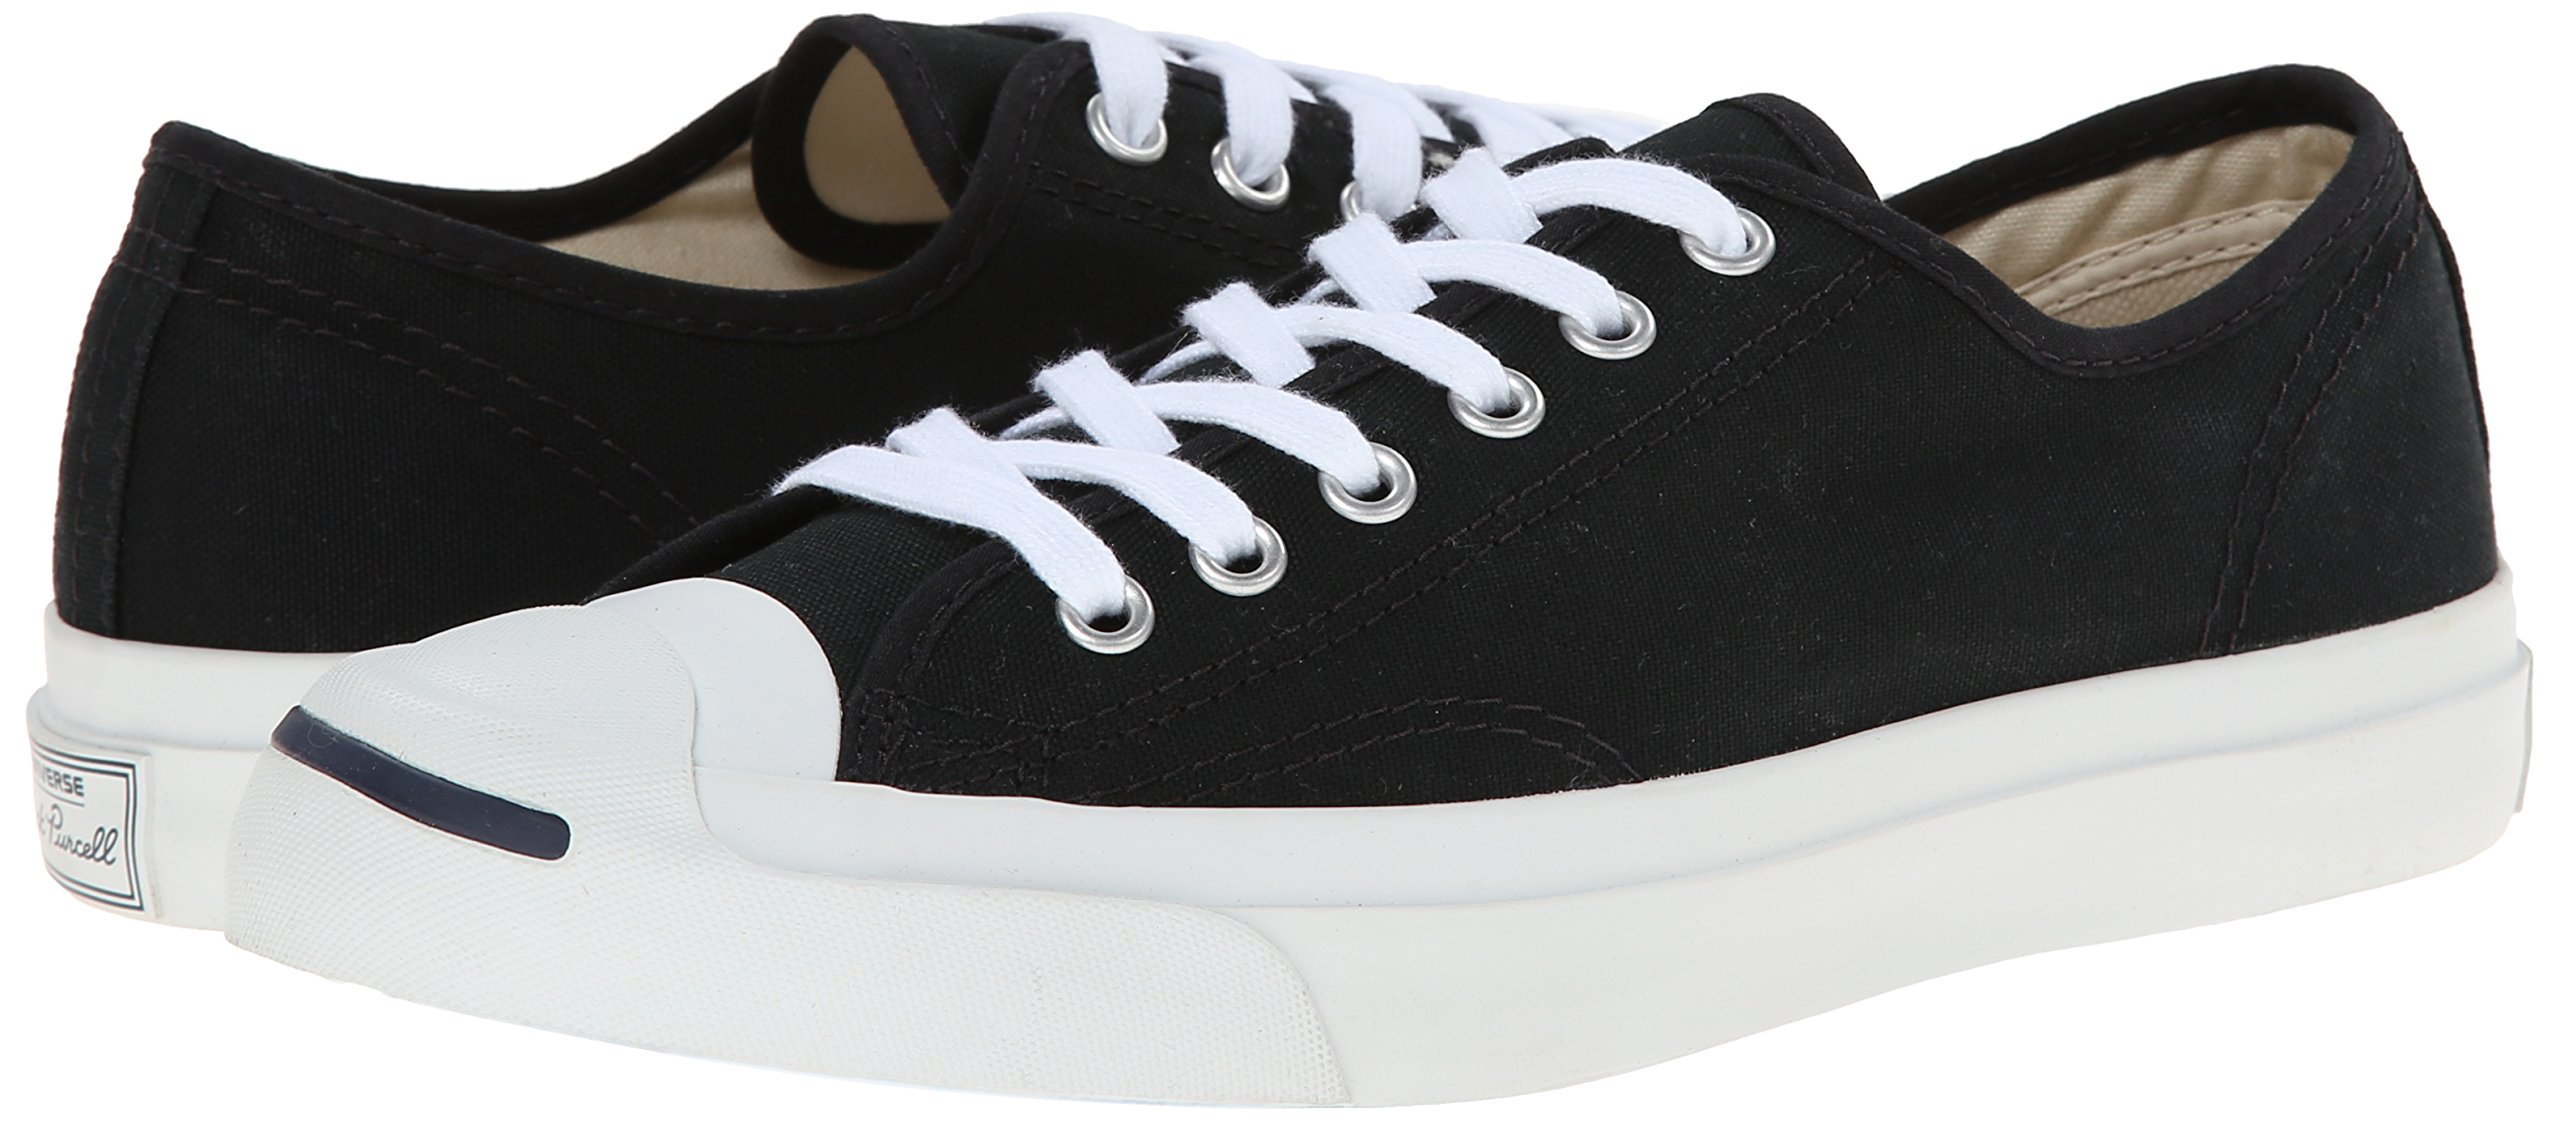 Converse Jack Purcell CP Oxford Canvas Black men's 10.5